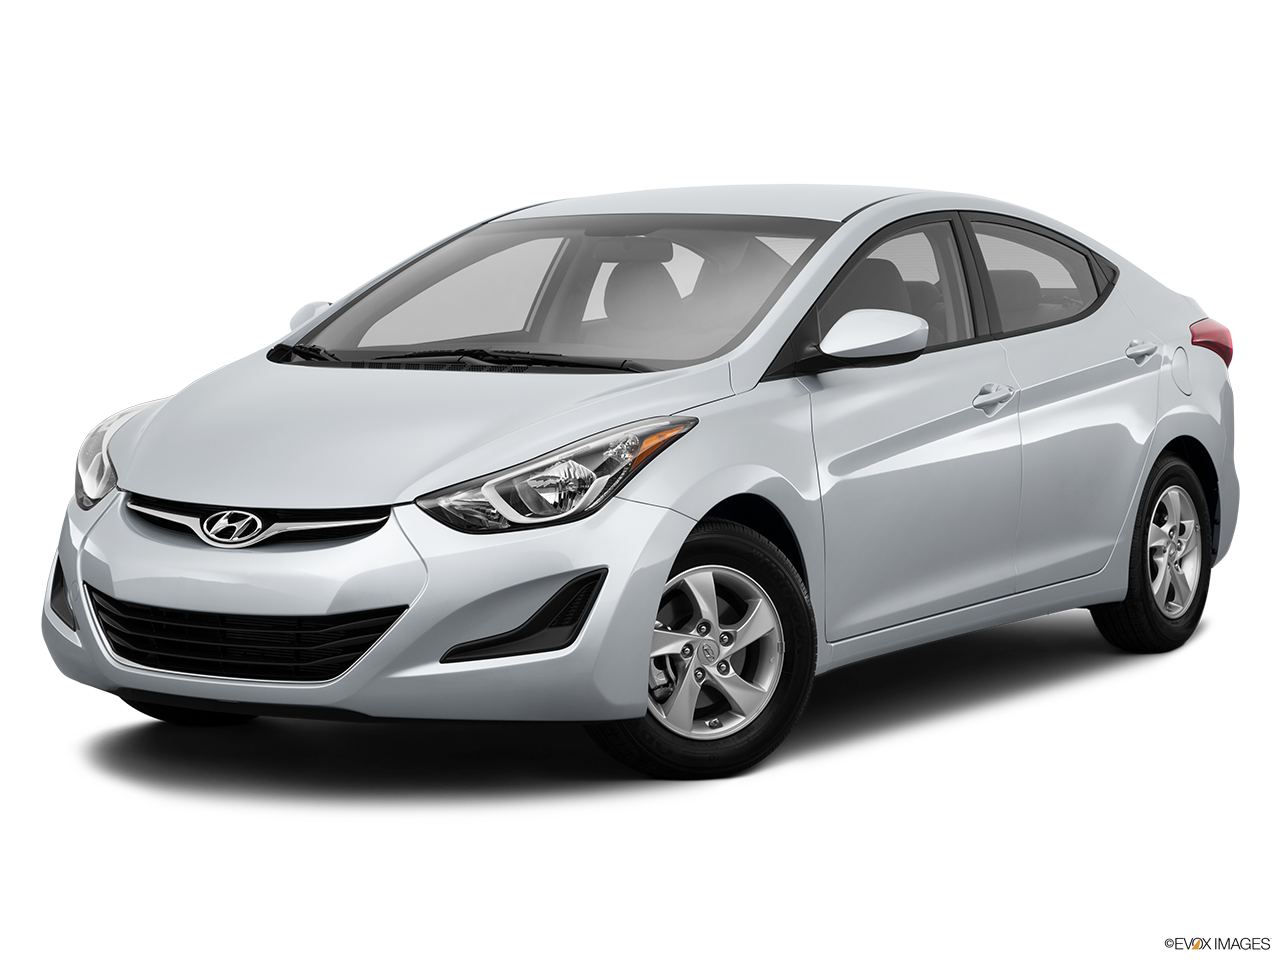 2015 hyundai elantra dealer serving richmond gateway hyundai. Black Bedroom Furniture Sets. Home Design Ideas